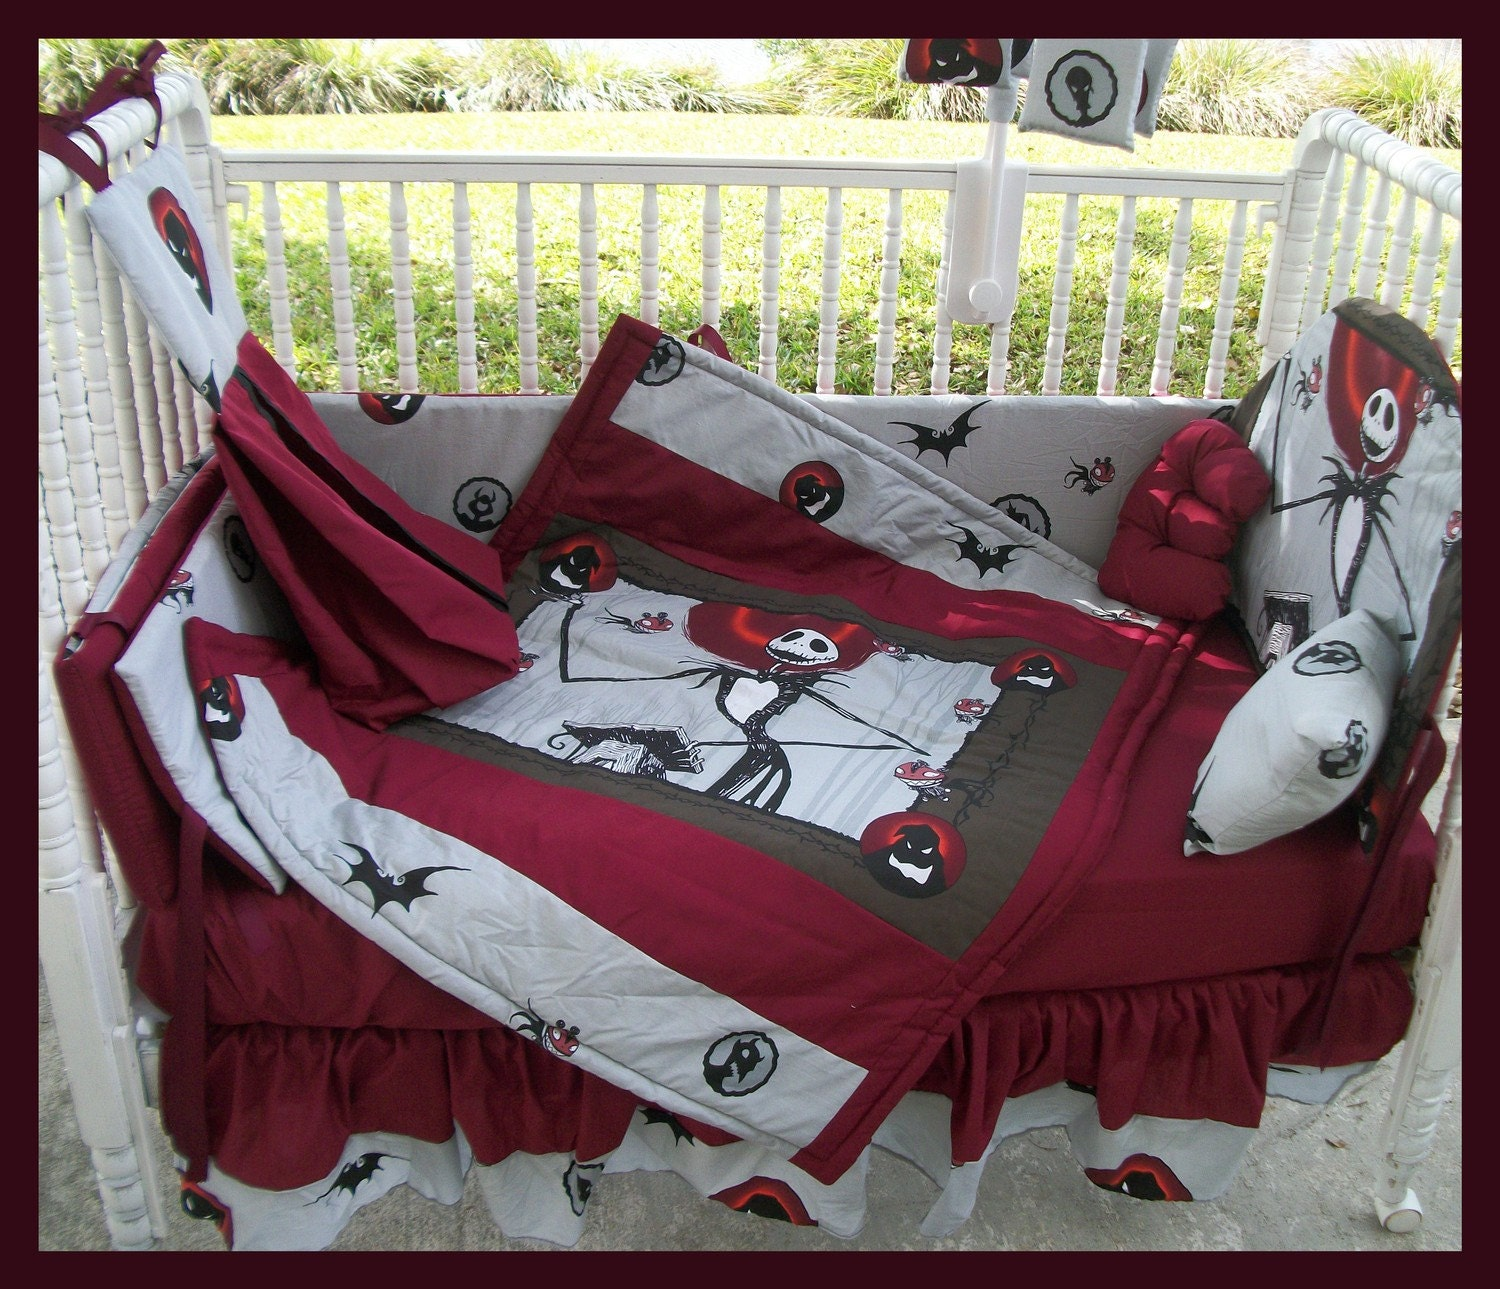 ... order New NIGHTMARE BEFORE CHRISTMAS Crib Bedding Set with Jack Zero